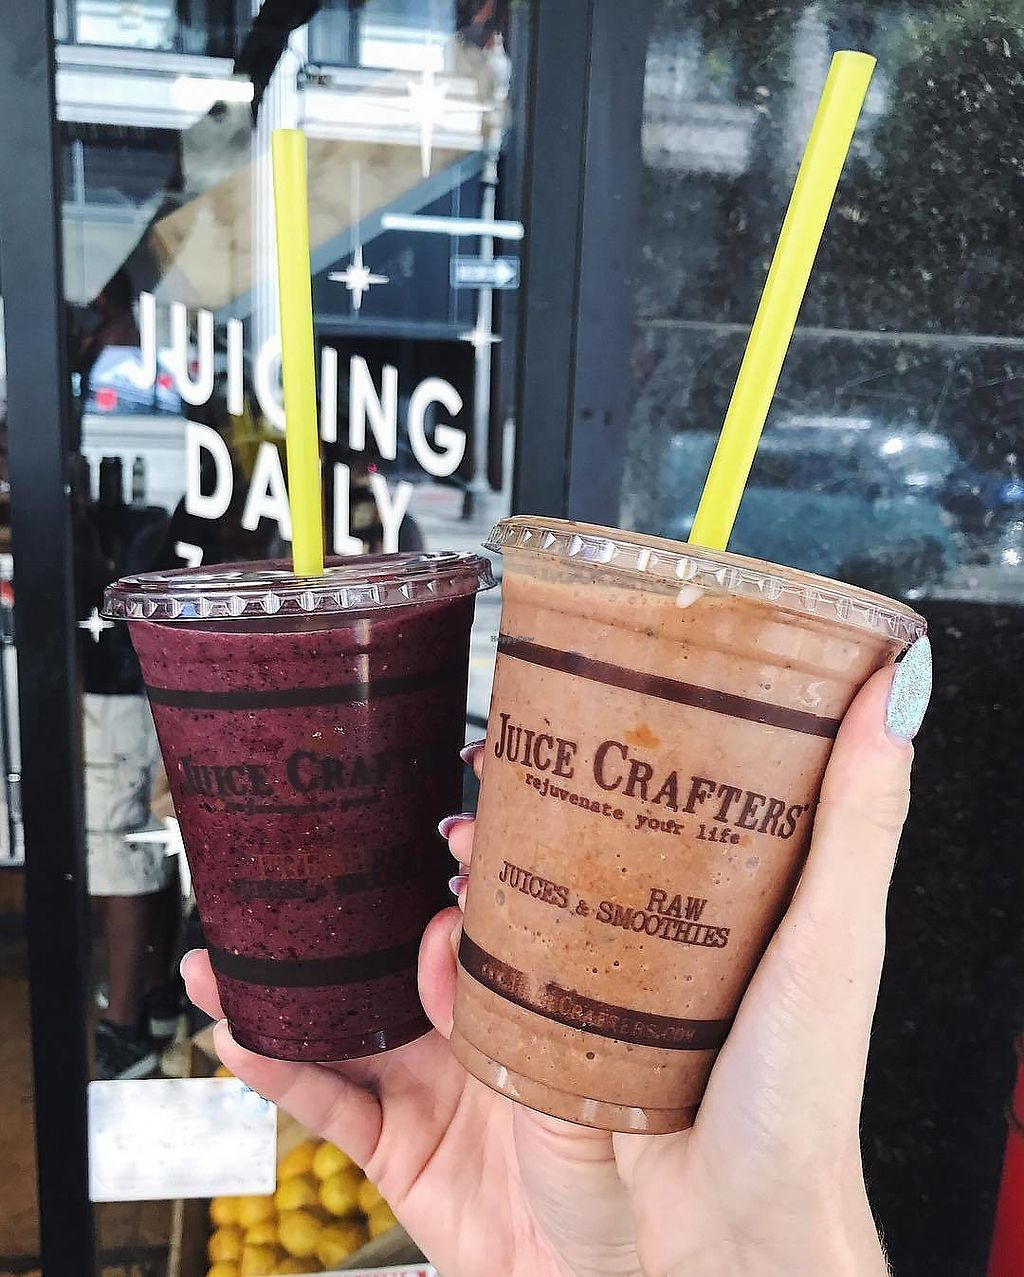 """Photo of Juice Crafters  by <a href=""""/members/profile/JuiceCrafters"""">JuiceCrafters</a> <br/>• Fountain of Youth Smoothie • Crunchy Monkey Smoothie <br/> December 10, 2017  - <a href='/contact/abuse/image/41447/334173'>Report</a>"""